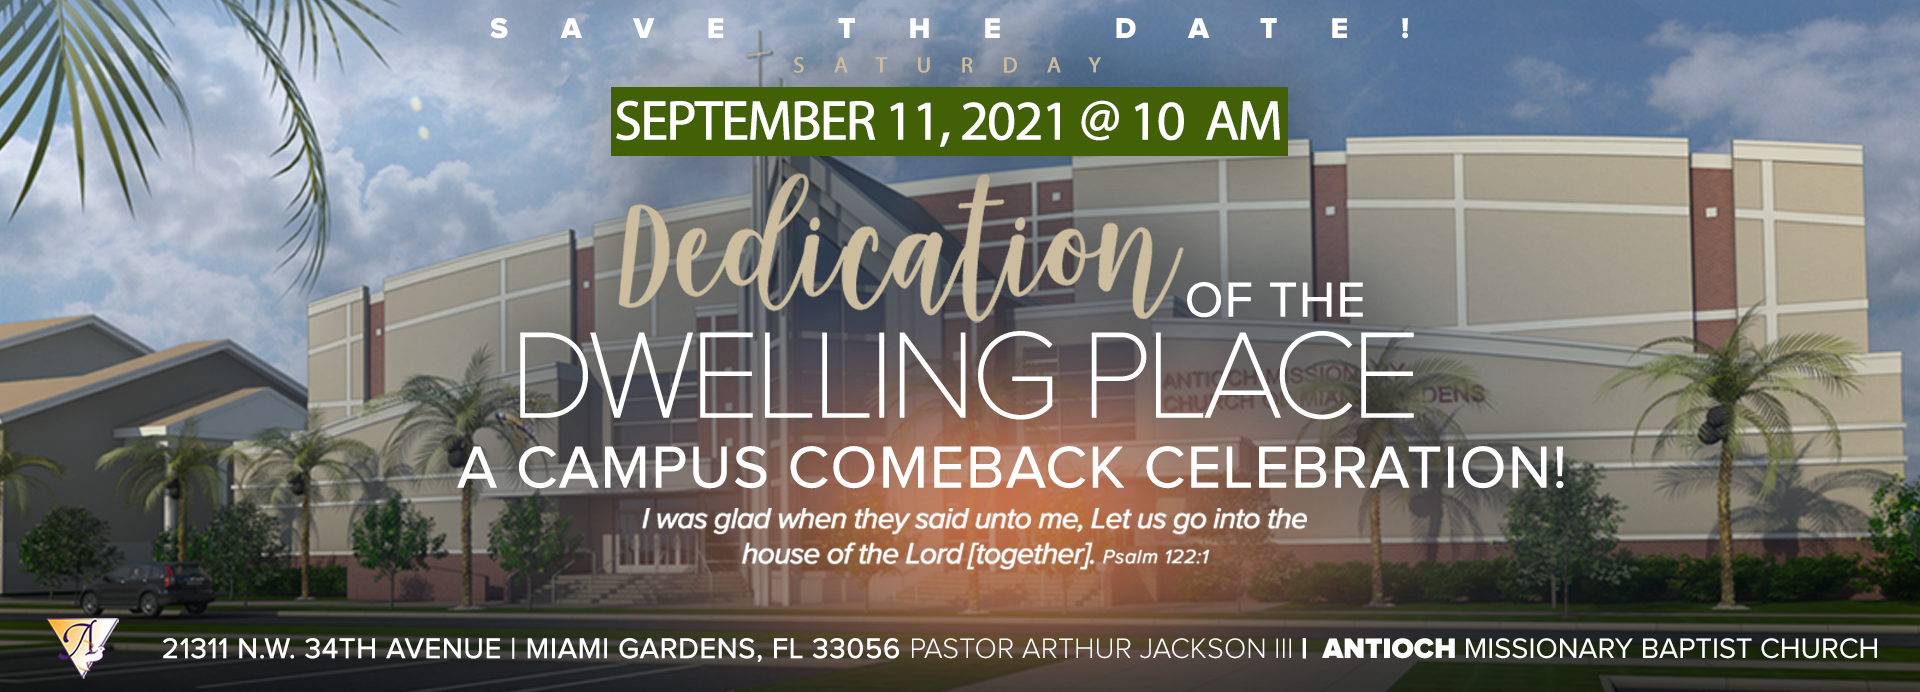 Dedication of the Dwelling Place